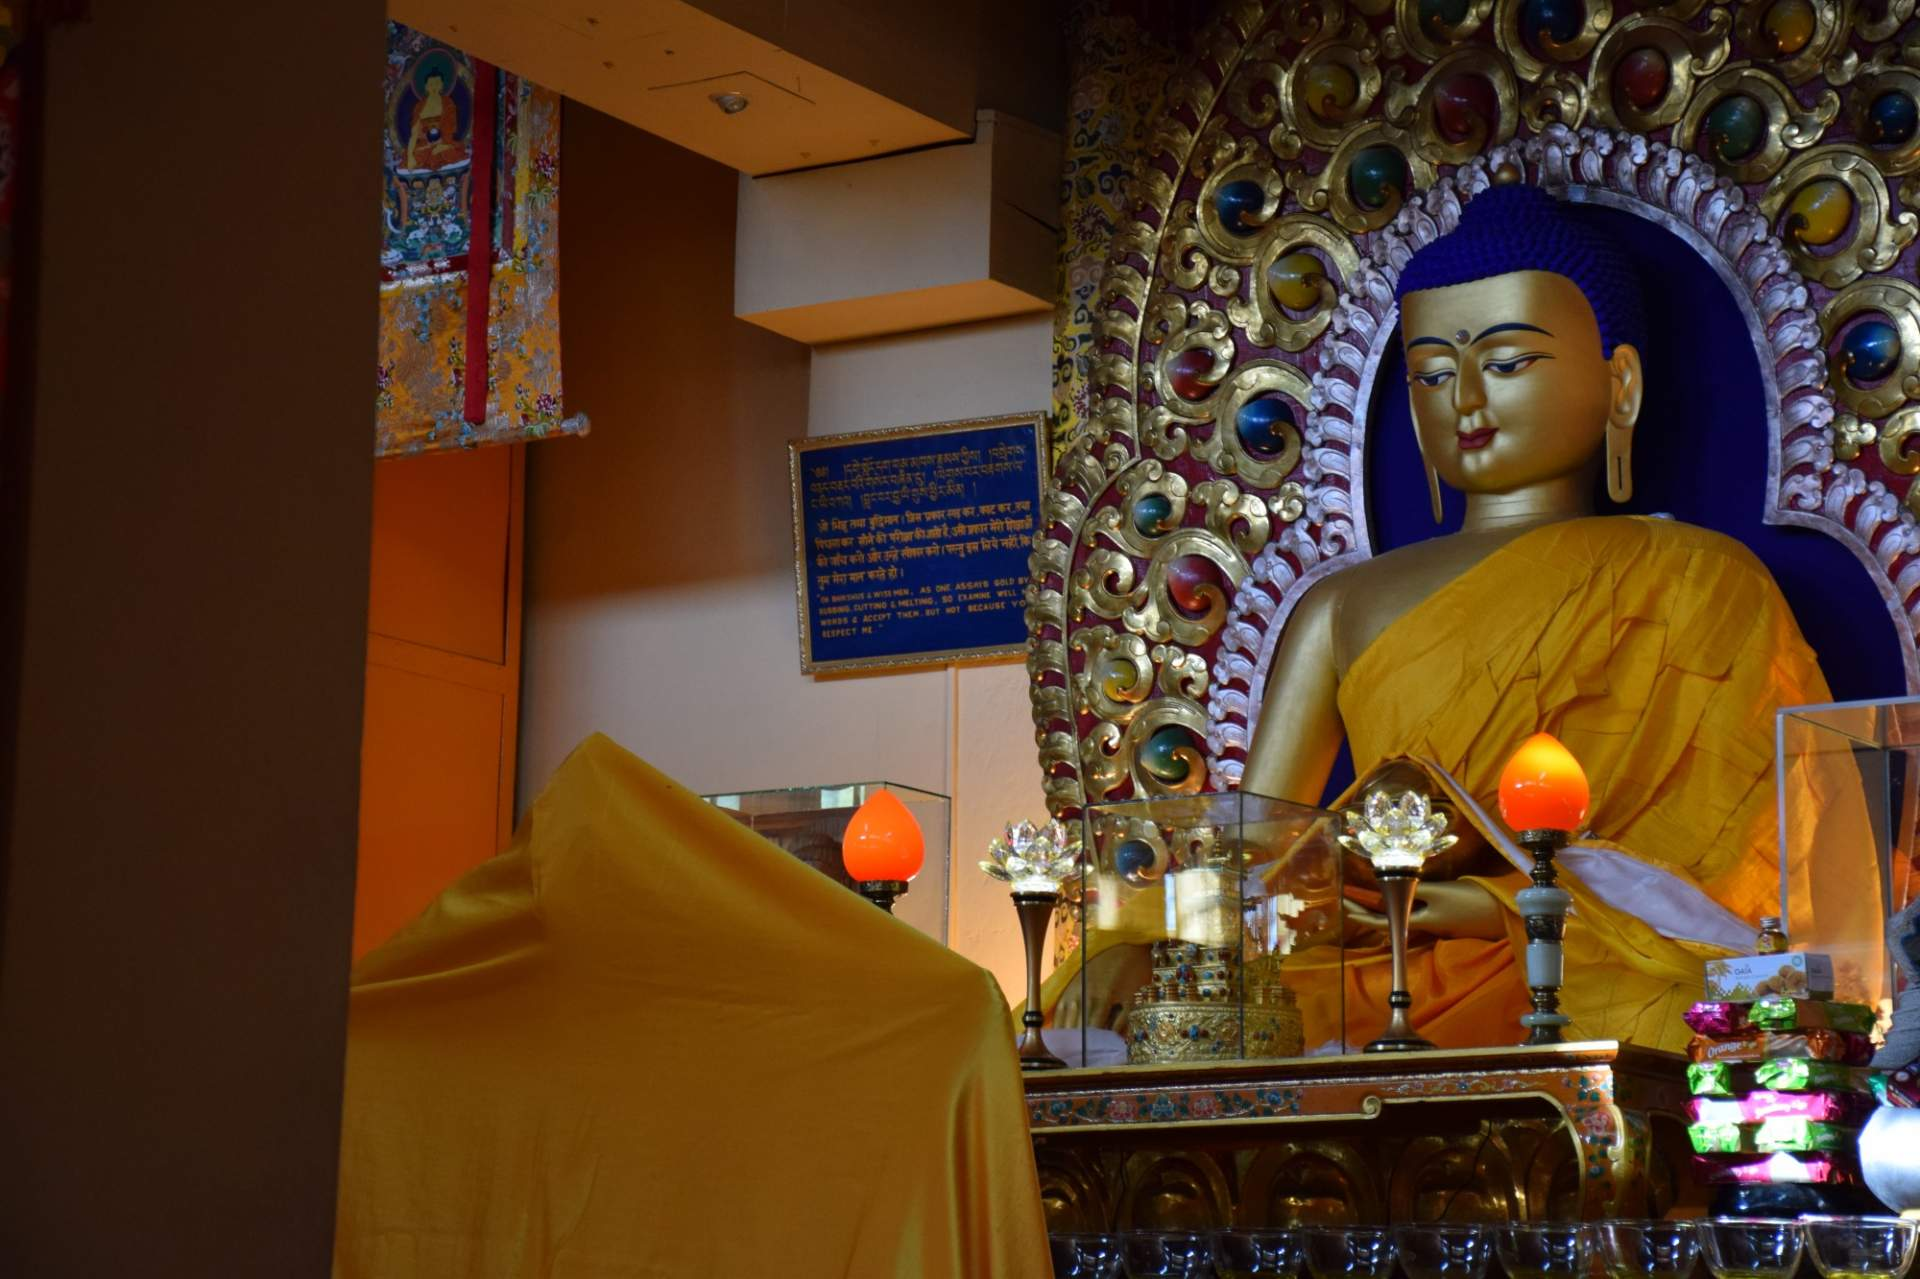 Dharamsala, Himachal Pradesh, home of the exiled Tibetan community and headquarters of the Dalai Lama, needs the gospel.